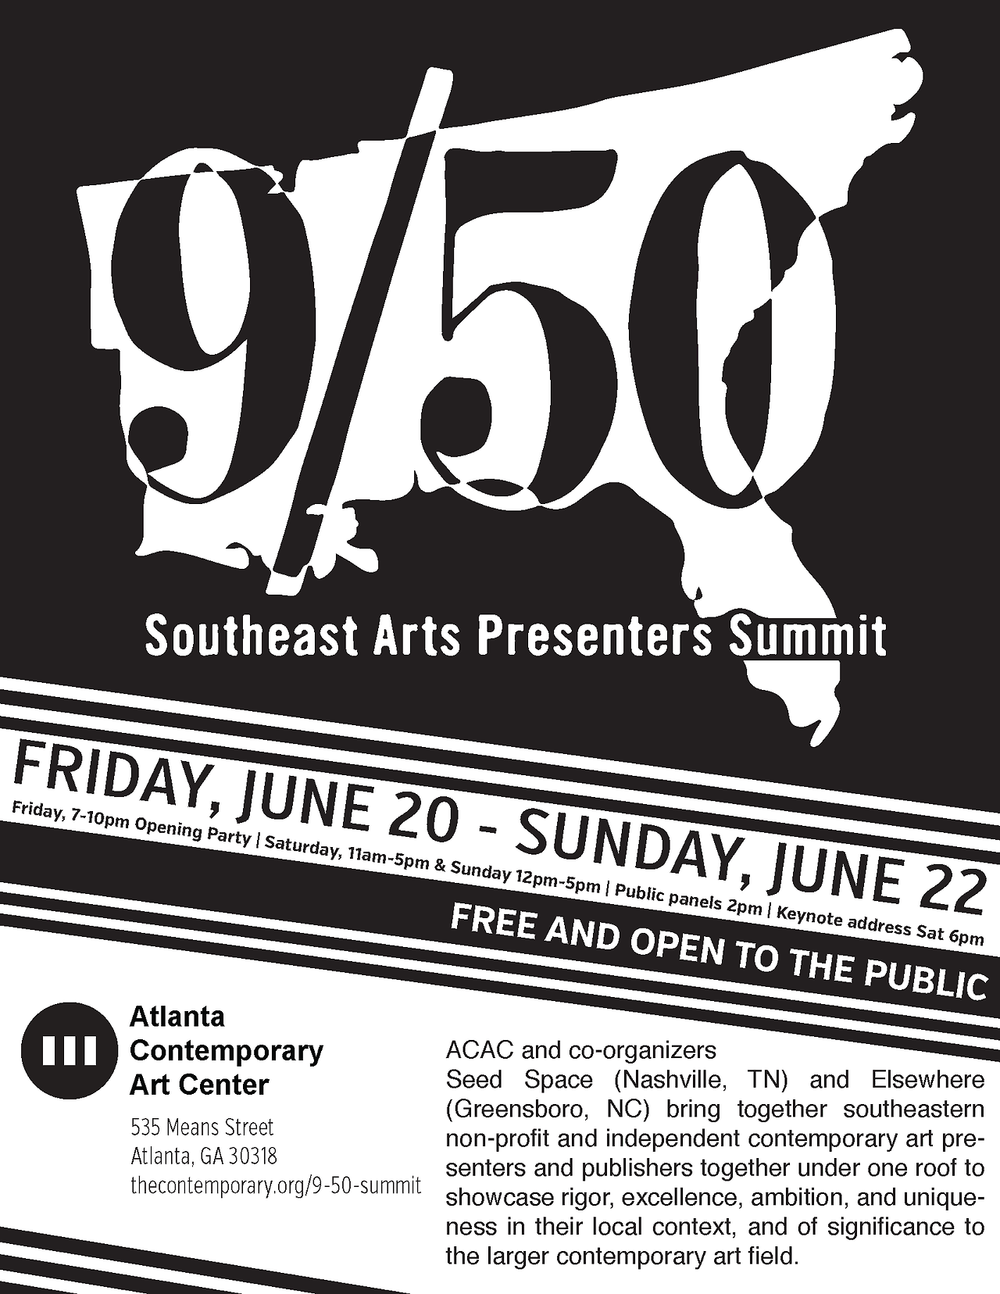 tammymercure :      adamforrester :     Honored to be showing work along with so many great photographers as part of Aint-Bad Magazine's exhibit at the 9/50 Southeast Arts Presenters Summit this weekend. Come check it out if you're around. It's Free! Preview some of the work  here      Hear! Hear! I'm also happy to be with such awesome people. :) If you are in the ATL area, please head over for me. If not, check out the link!     Some fine folks right here. I'm excited to be a part of this, with some of the photographers I admire most, in a region I love. A special thanks to my Savannah friends over at  Aint-Bad . You've done it again!